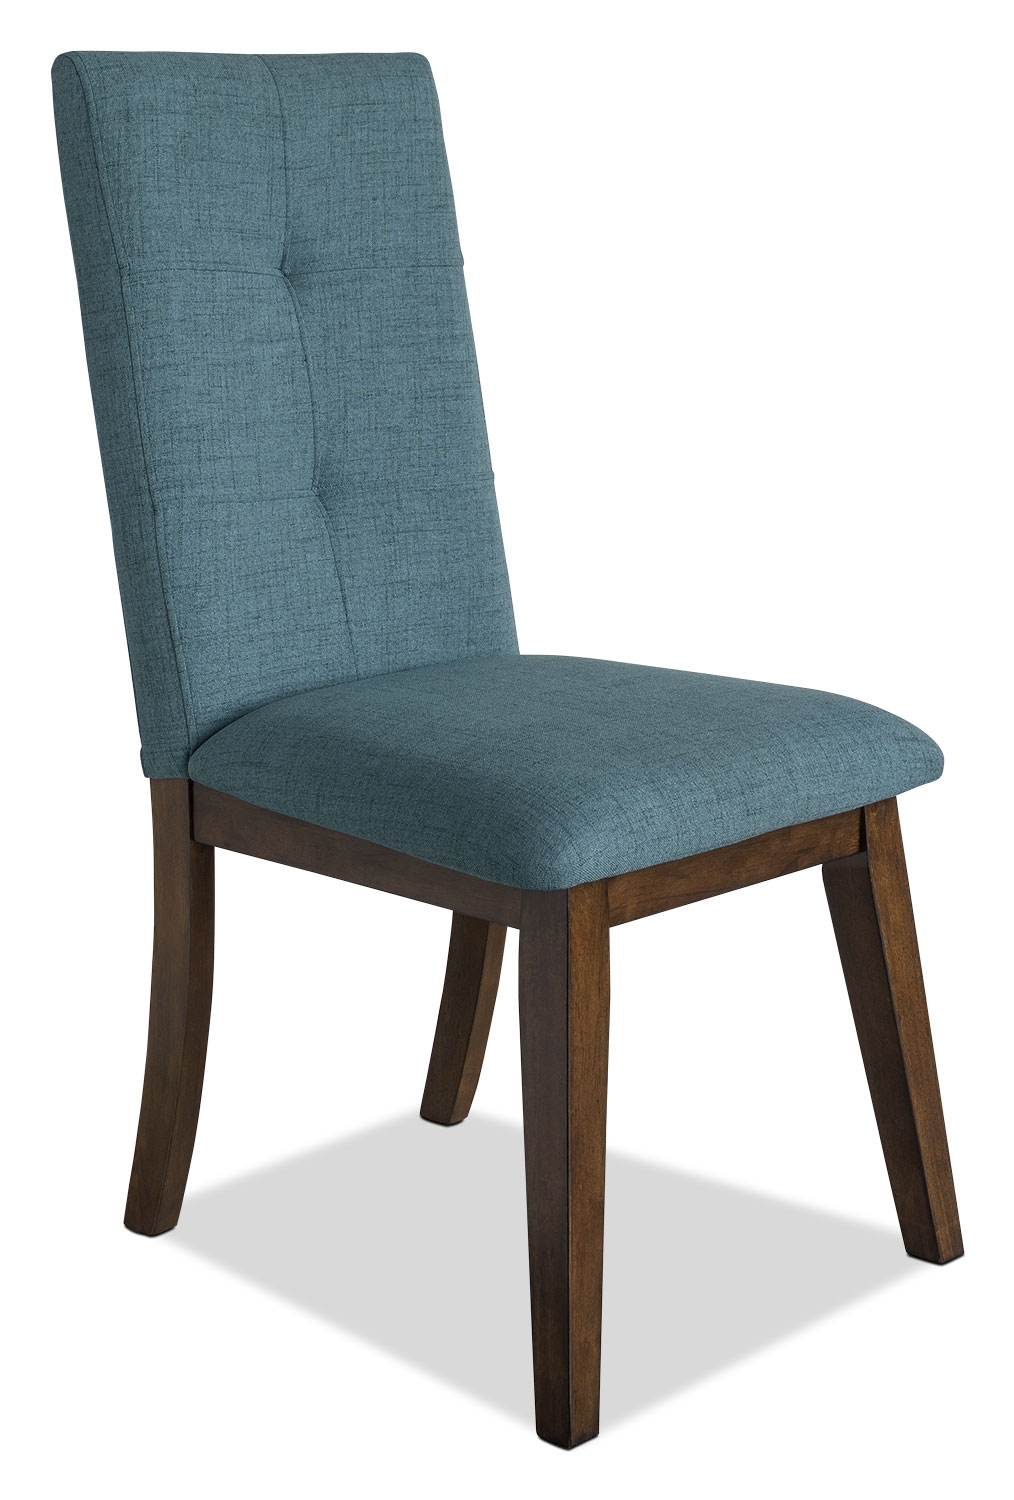 Chelsea Fabric Dining Chair Aqua